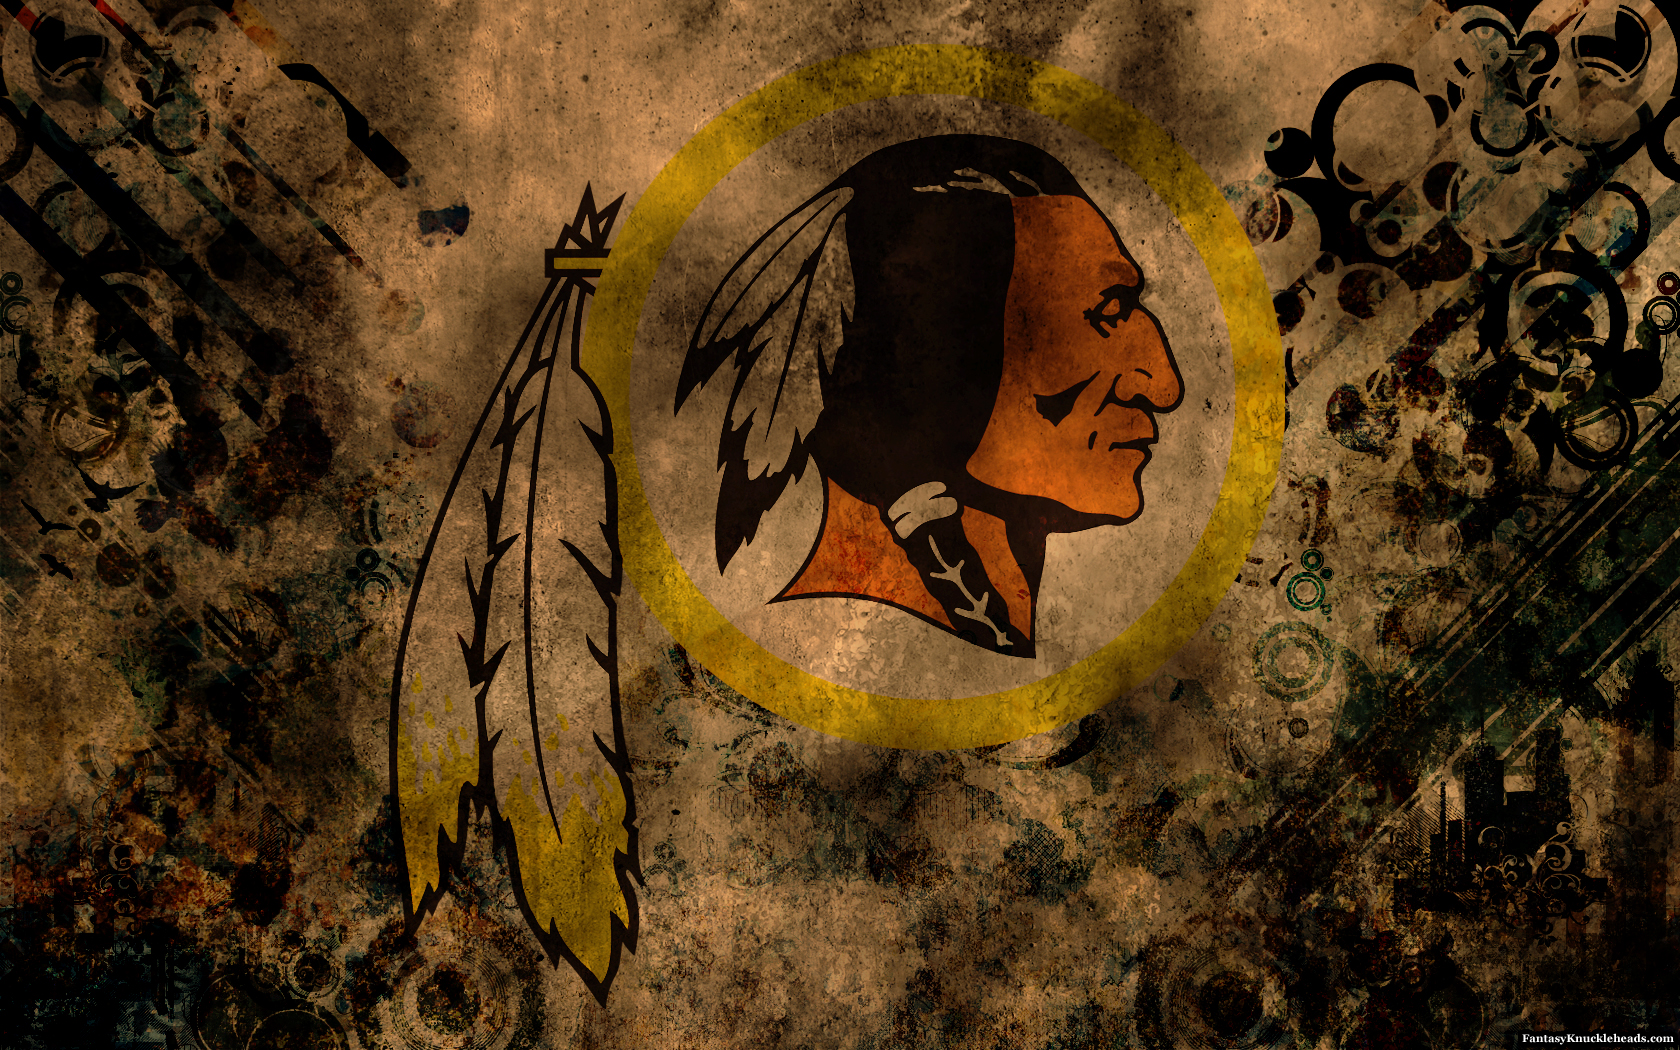 50 Washington Redskins Wallpaper Screensavers On Wallpapersafari